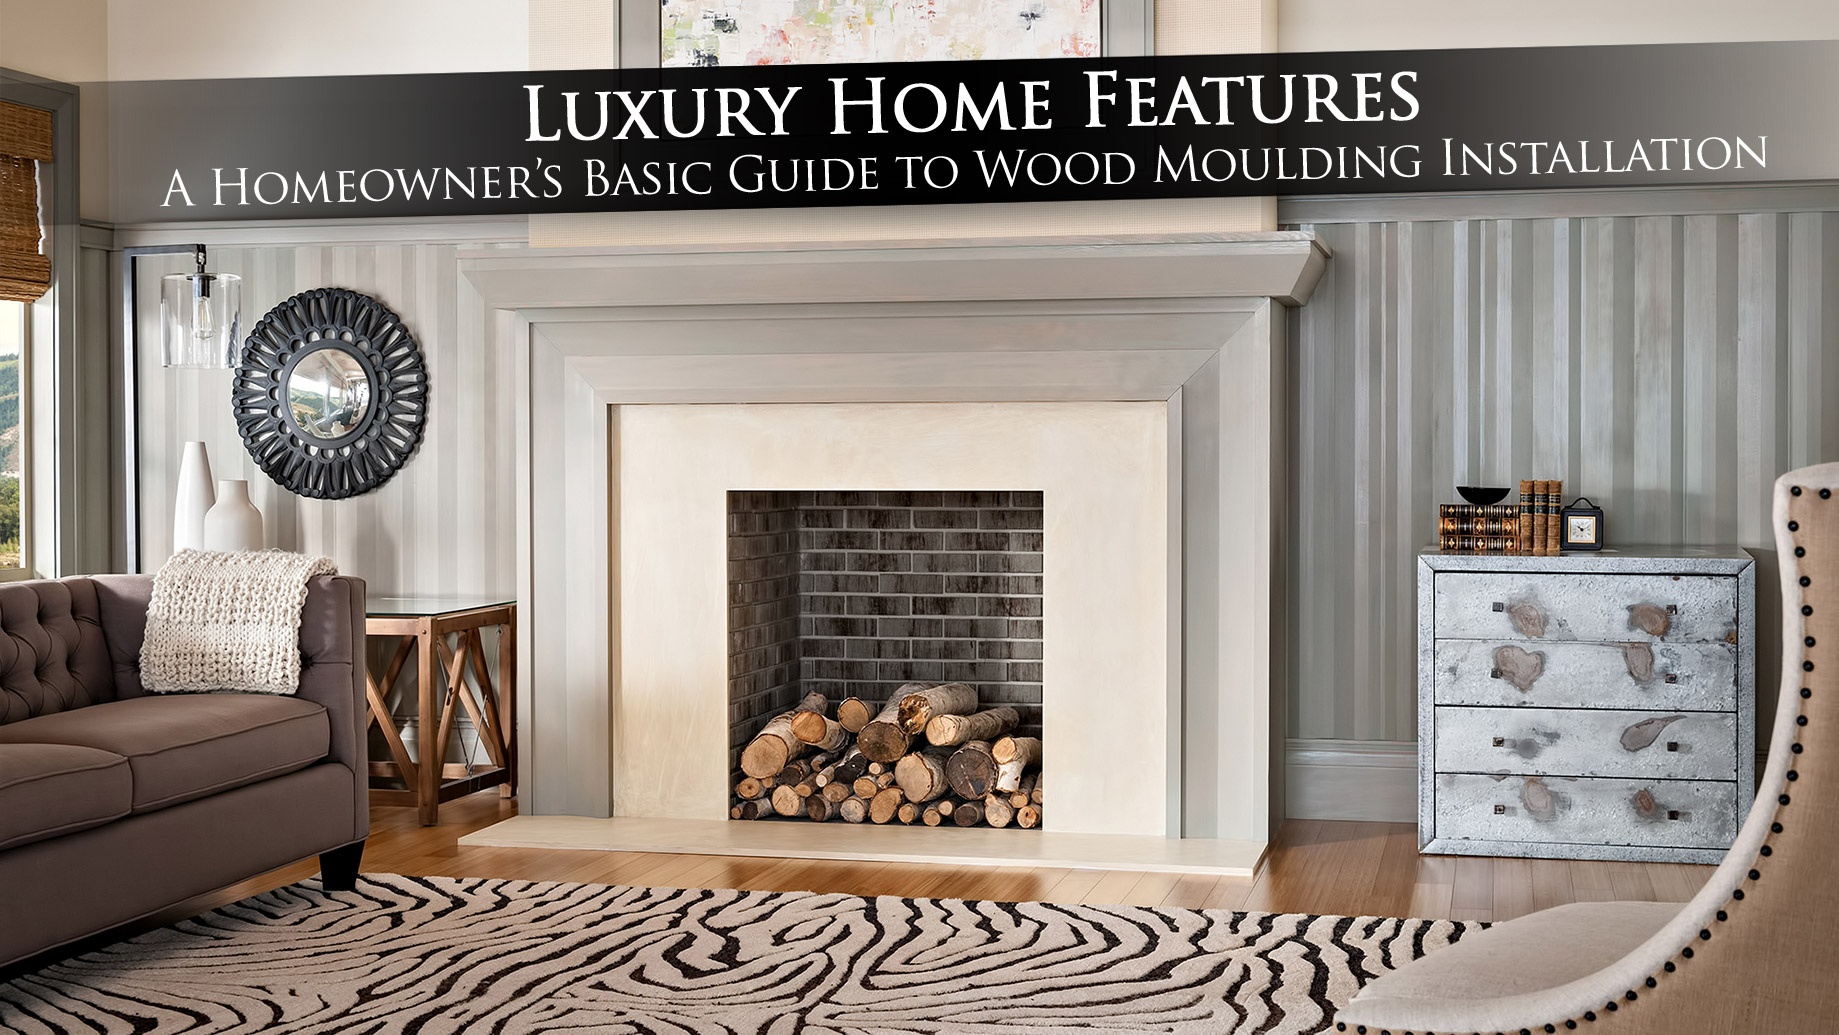 Luxury Home Features - A Homeowner's Basic Guide to Wood Moulding Installation